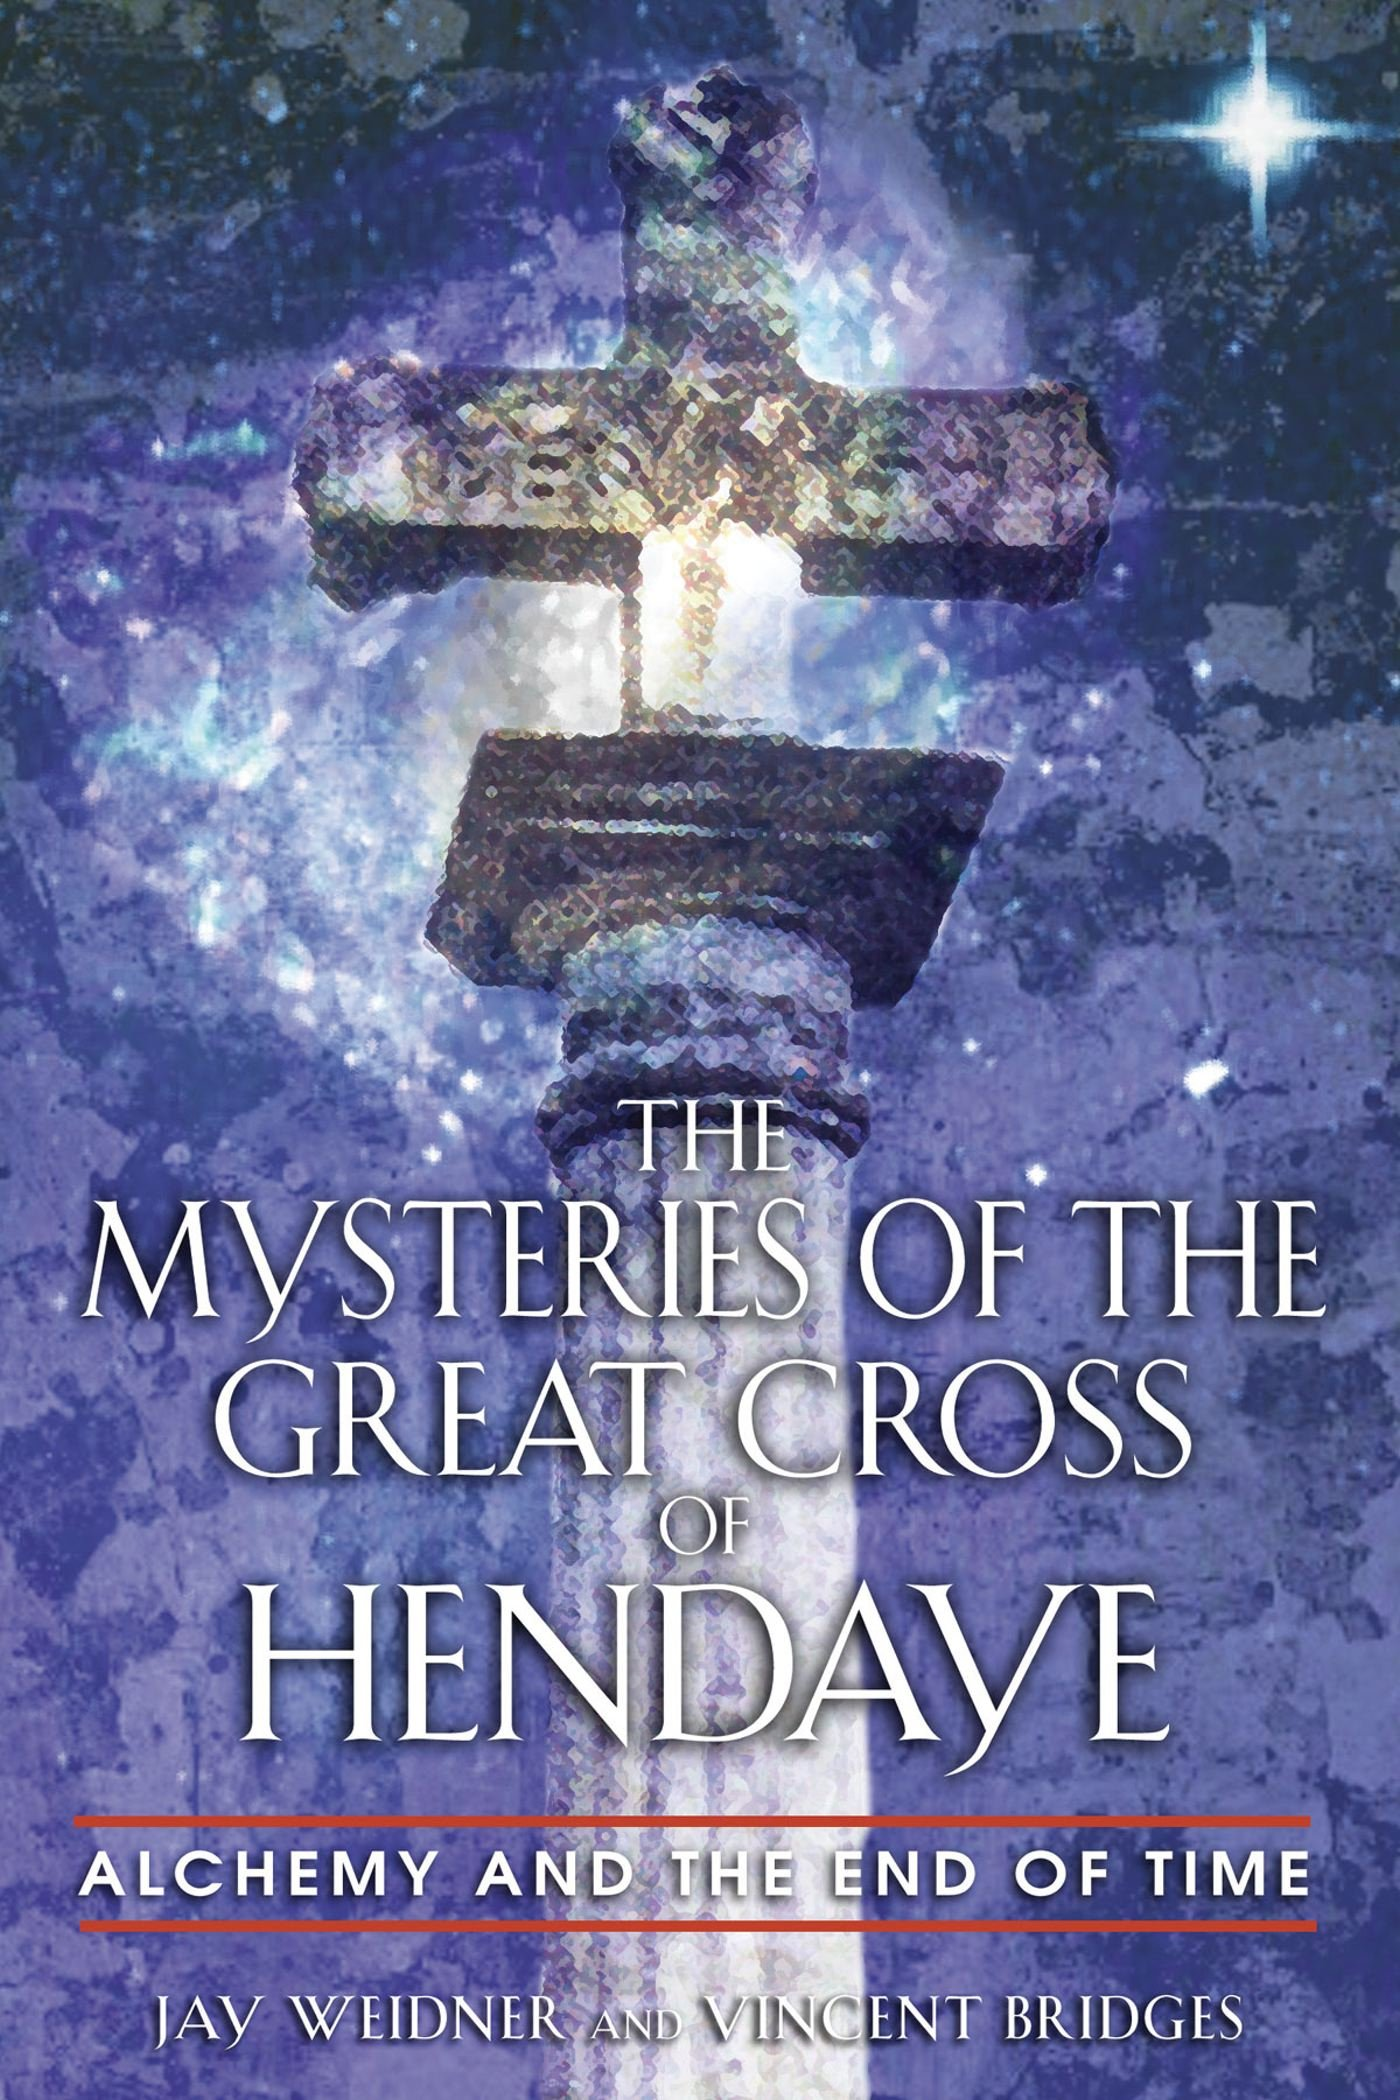 The Mysteries of the Great Cross of